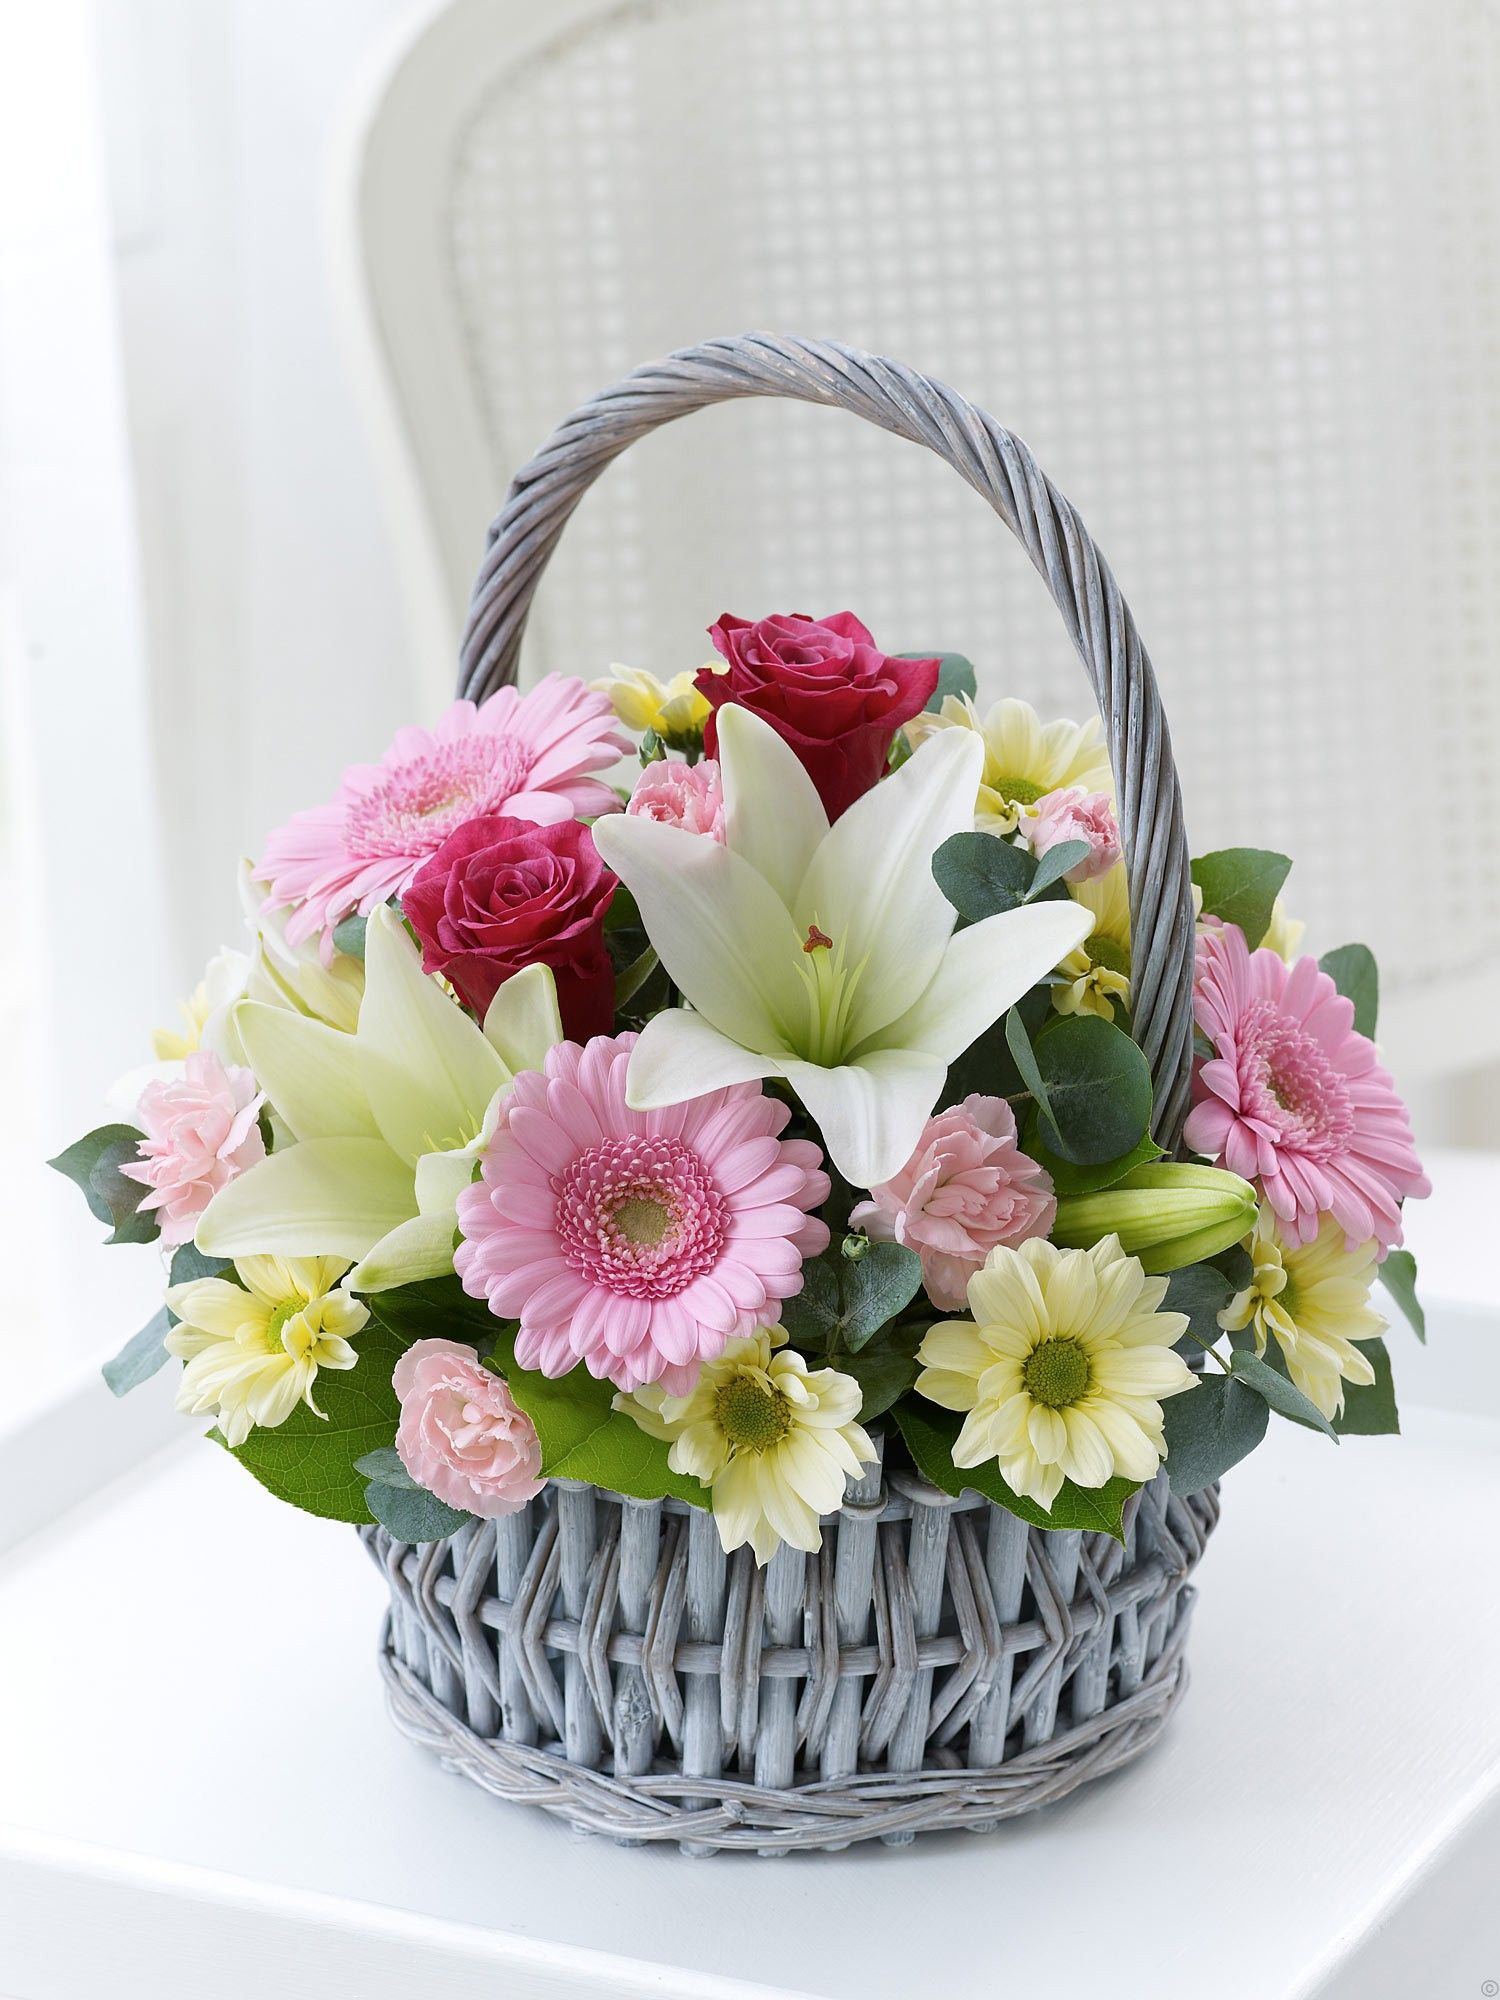 This delicate basket arrangement with its gentle colours and soft velvety pet